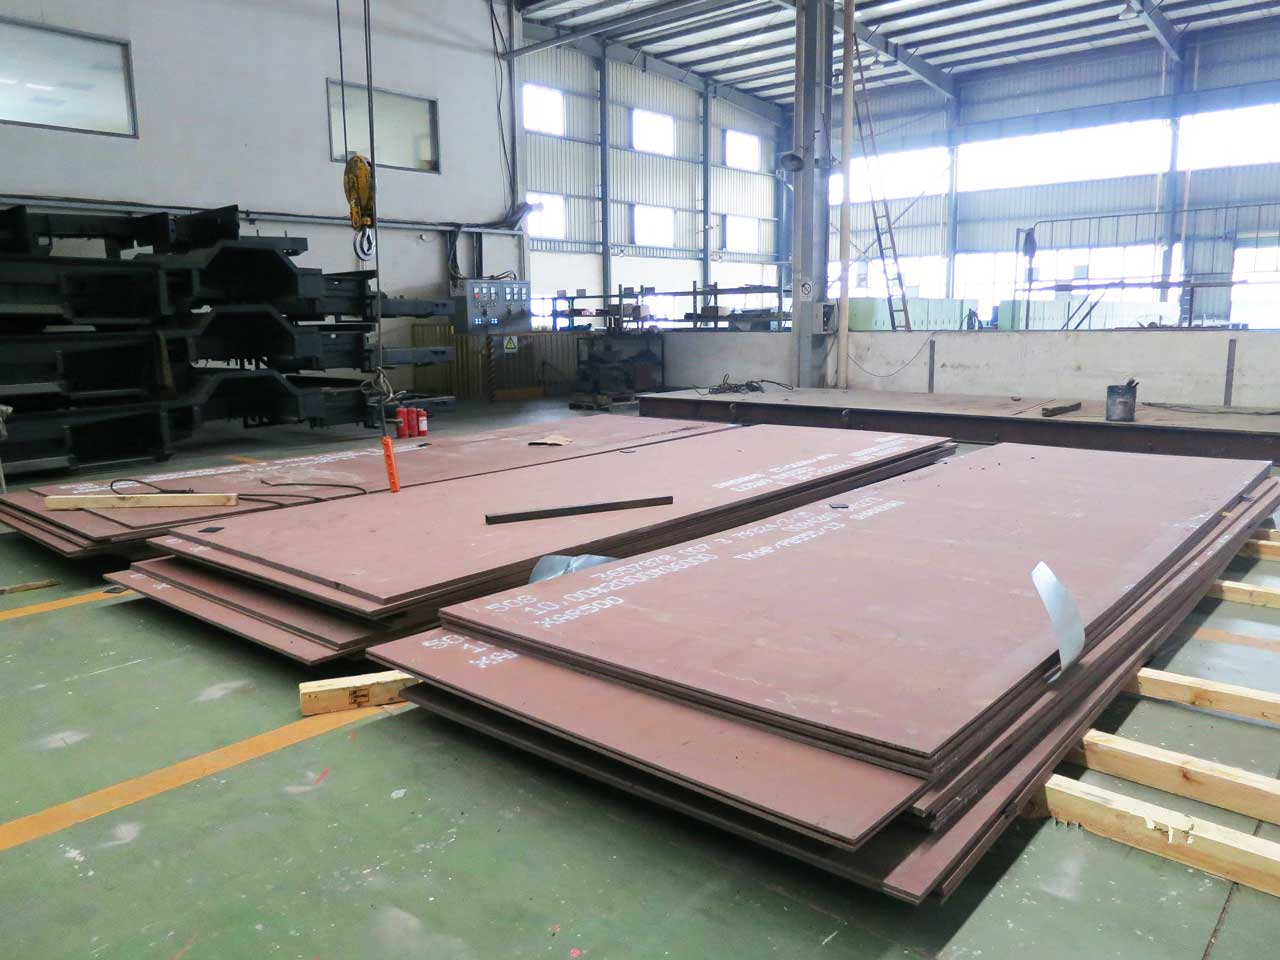 NM400 abrasion resistant steel plates